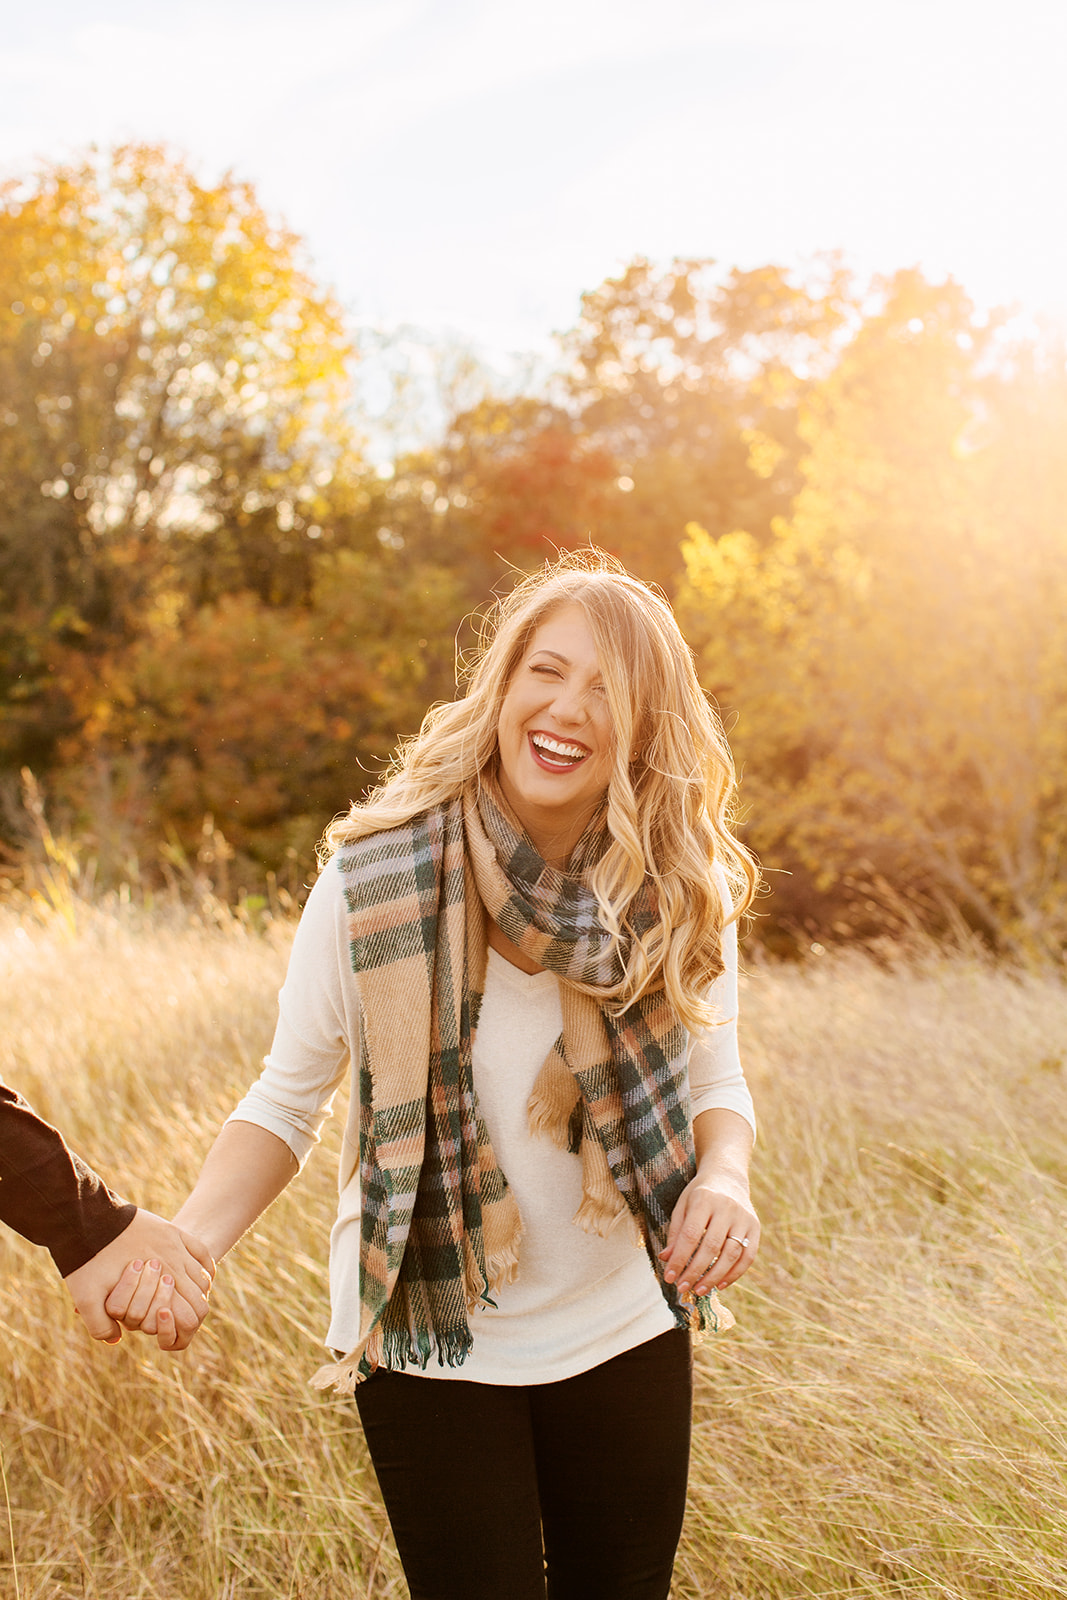 Alexa-Vossler-Photo_Dallas-Engagement-Photographer_Engagment-Session-at-White-Rock-Lake_Jessica-Ben-24.jpg